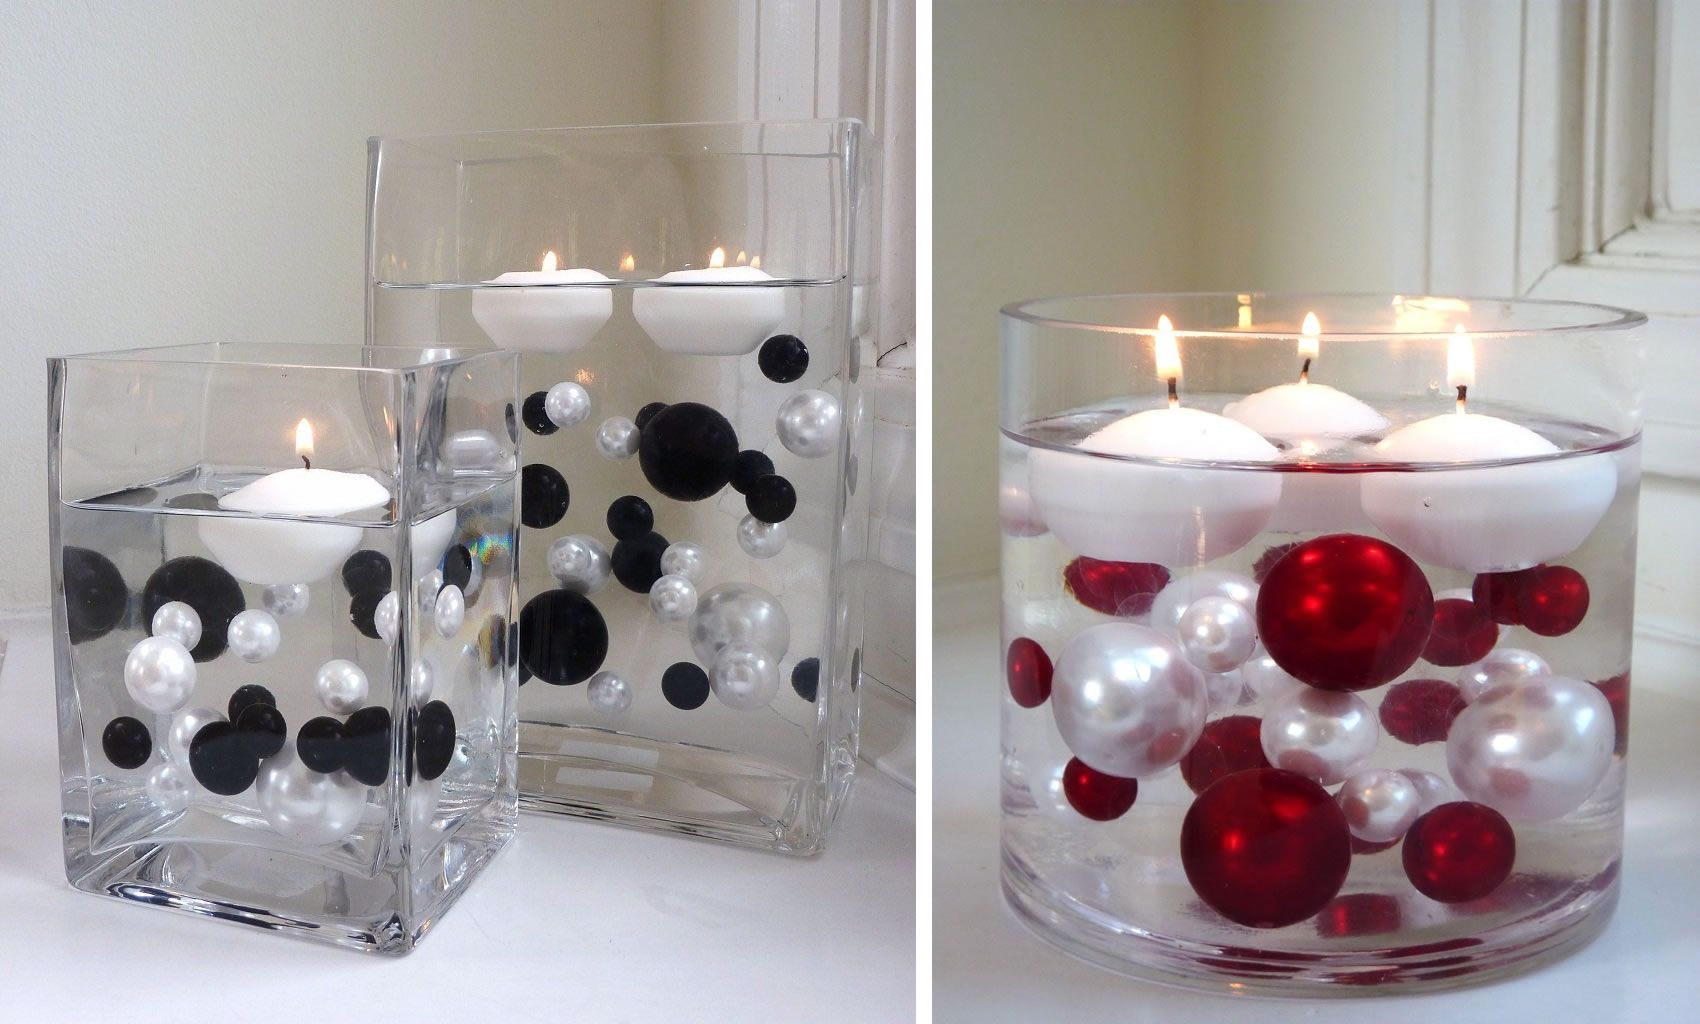 Diy candle holder ideas to brighten your home wedding diy candles